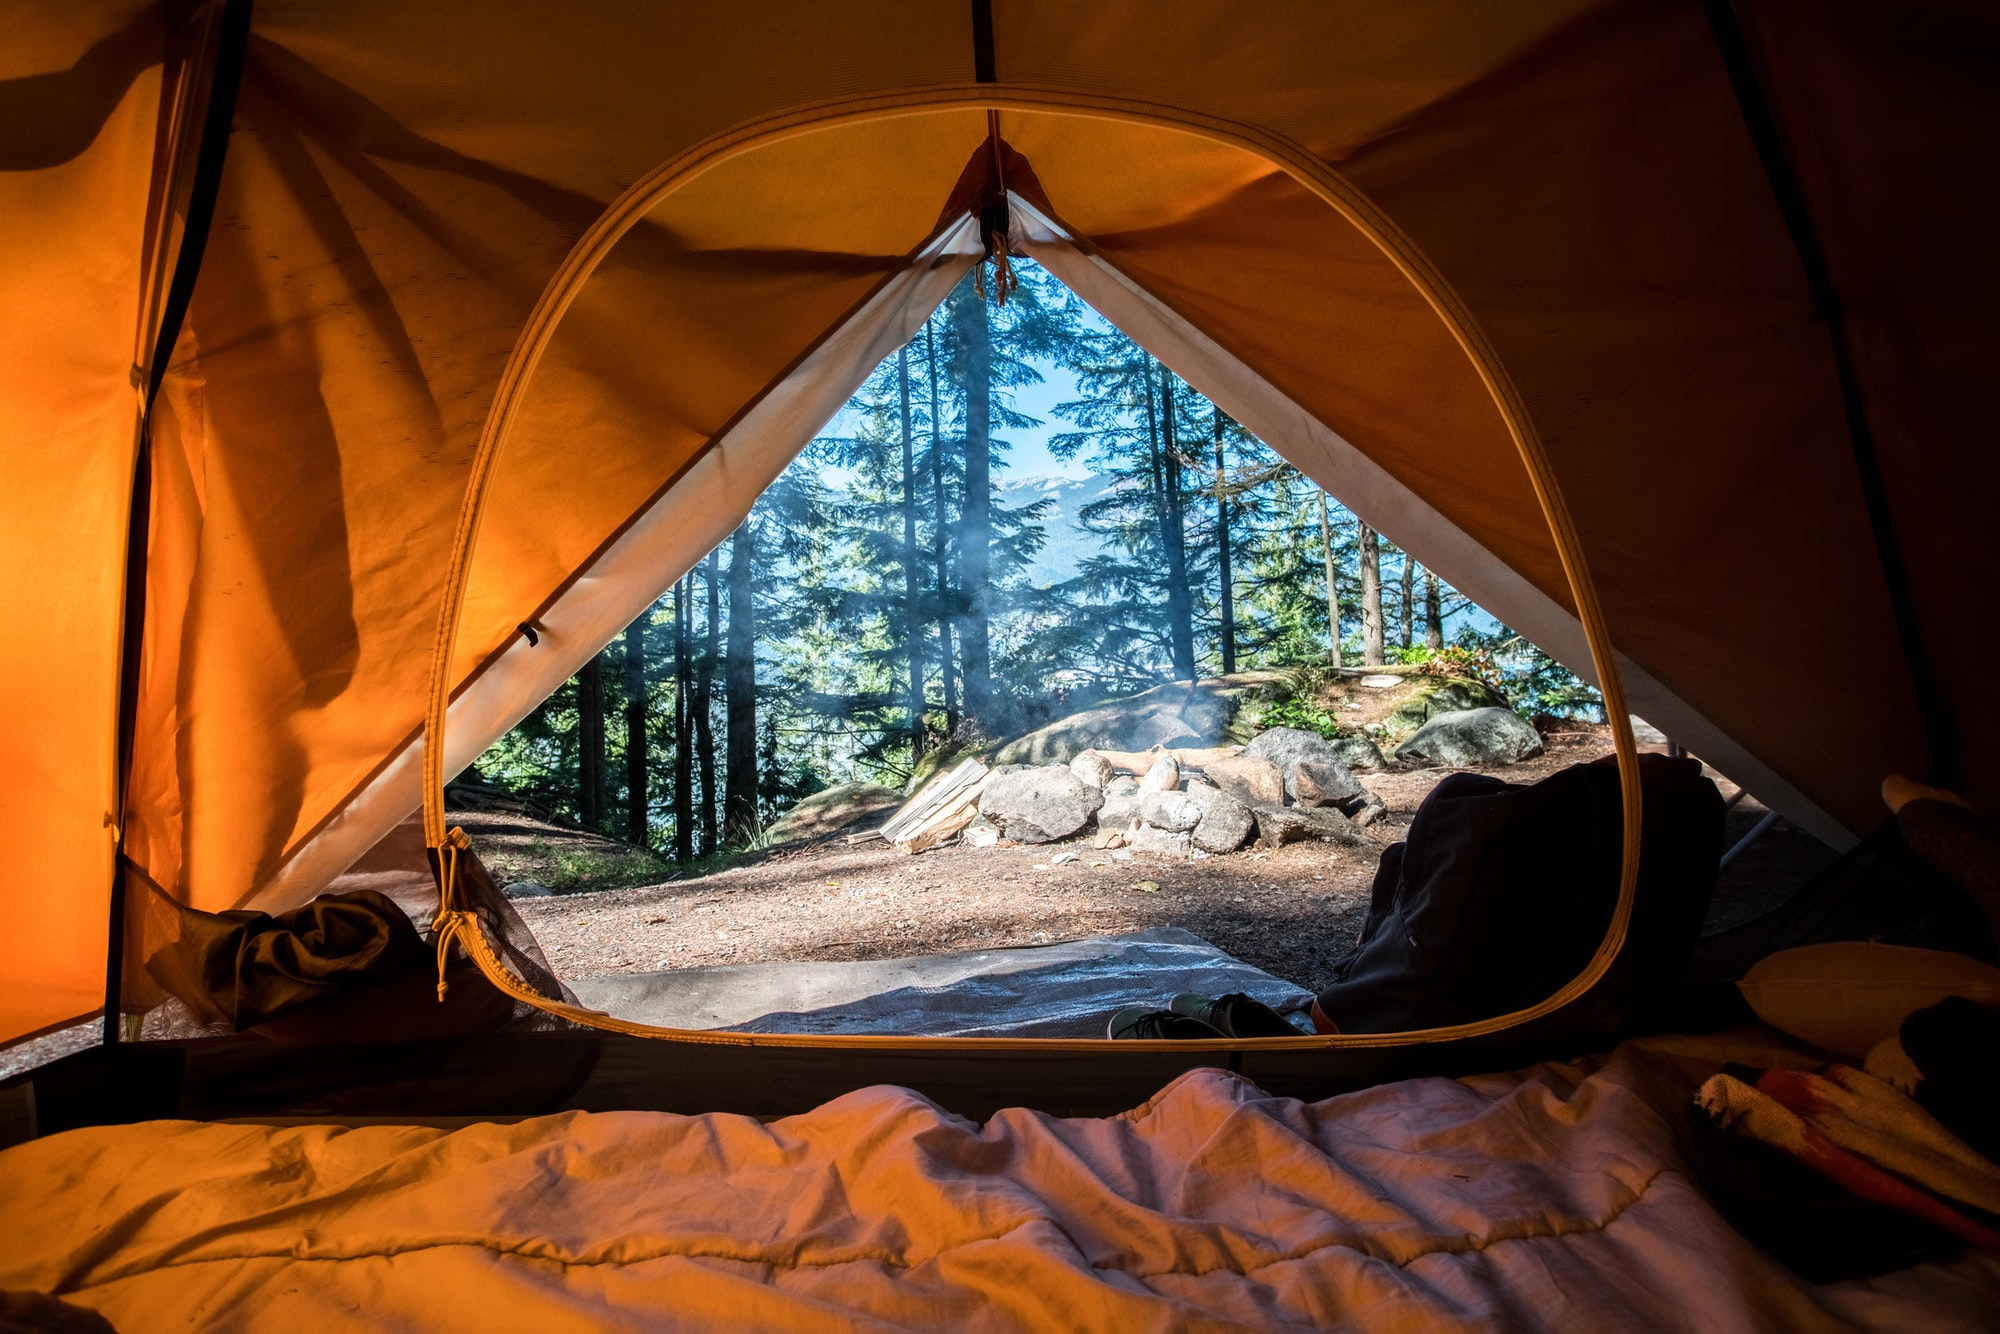 Weekly Drills 043 - #CampingTent